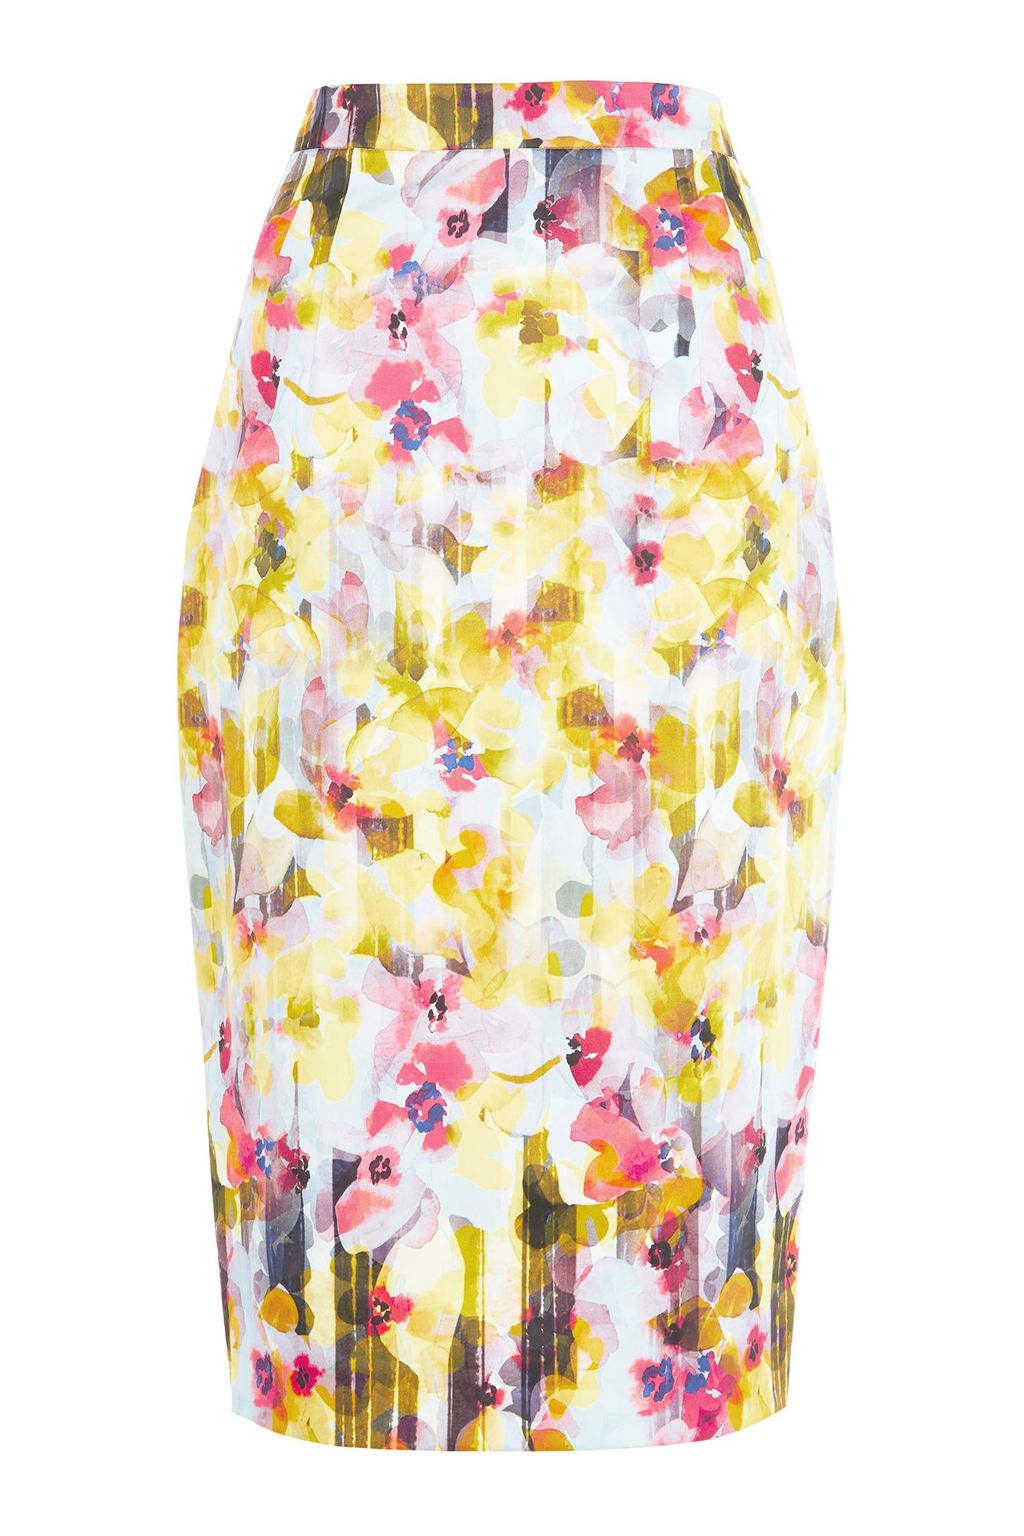 Shadow Floral Skirt, Multi Coloured - style: pencil; fit: tailored/fitted; waist: high rise; secondary colour: pink; predominant colour: yellow; length: on the knee; fibres: cotton - mix; occasions: occasion, creative work; texture group: cotton feel fabrics; pattern type: fabric; pattern: patterned/print; multicoloured: multicoloured; season: s/s 2016; wardrobe: highlight